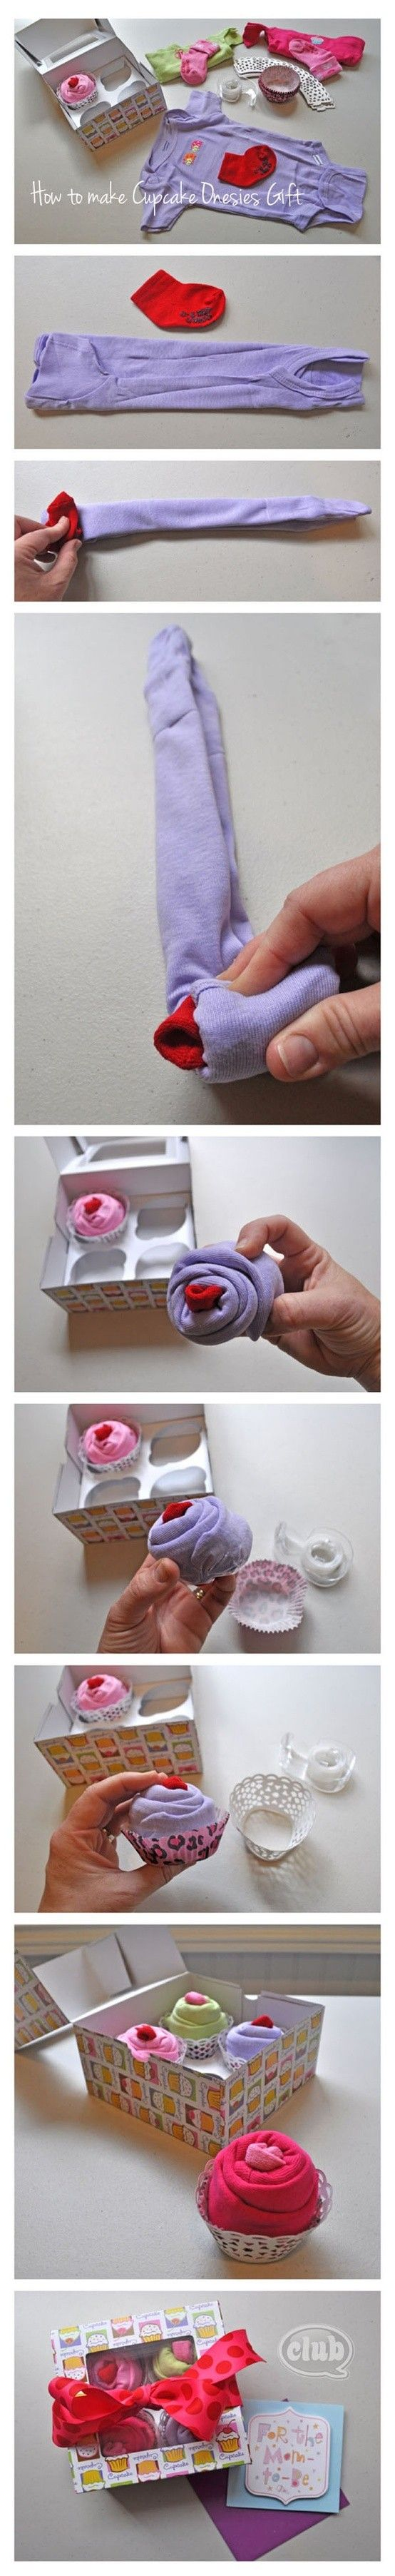 How to make a: Cupcake onesize gift